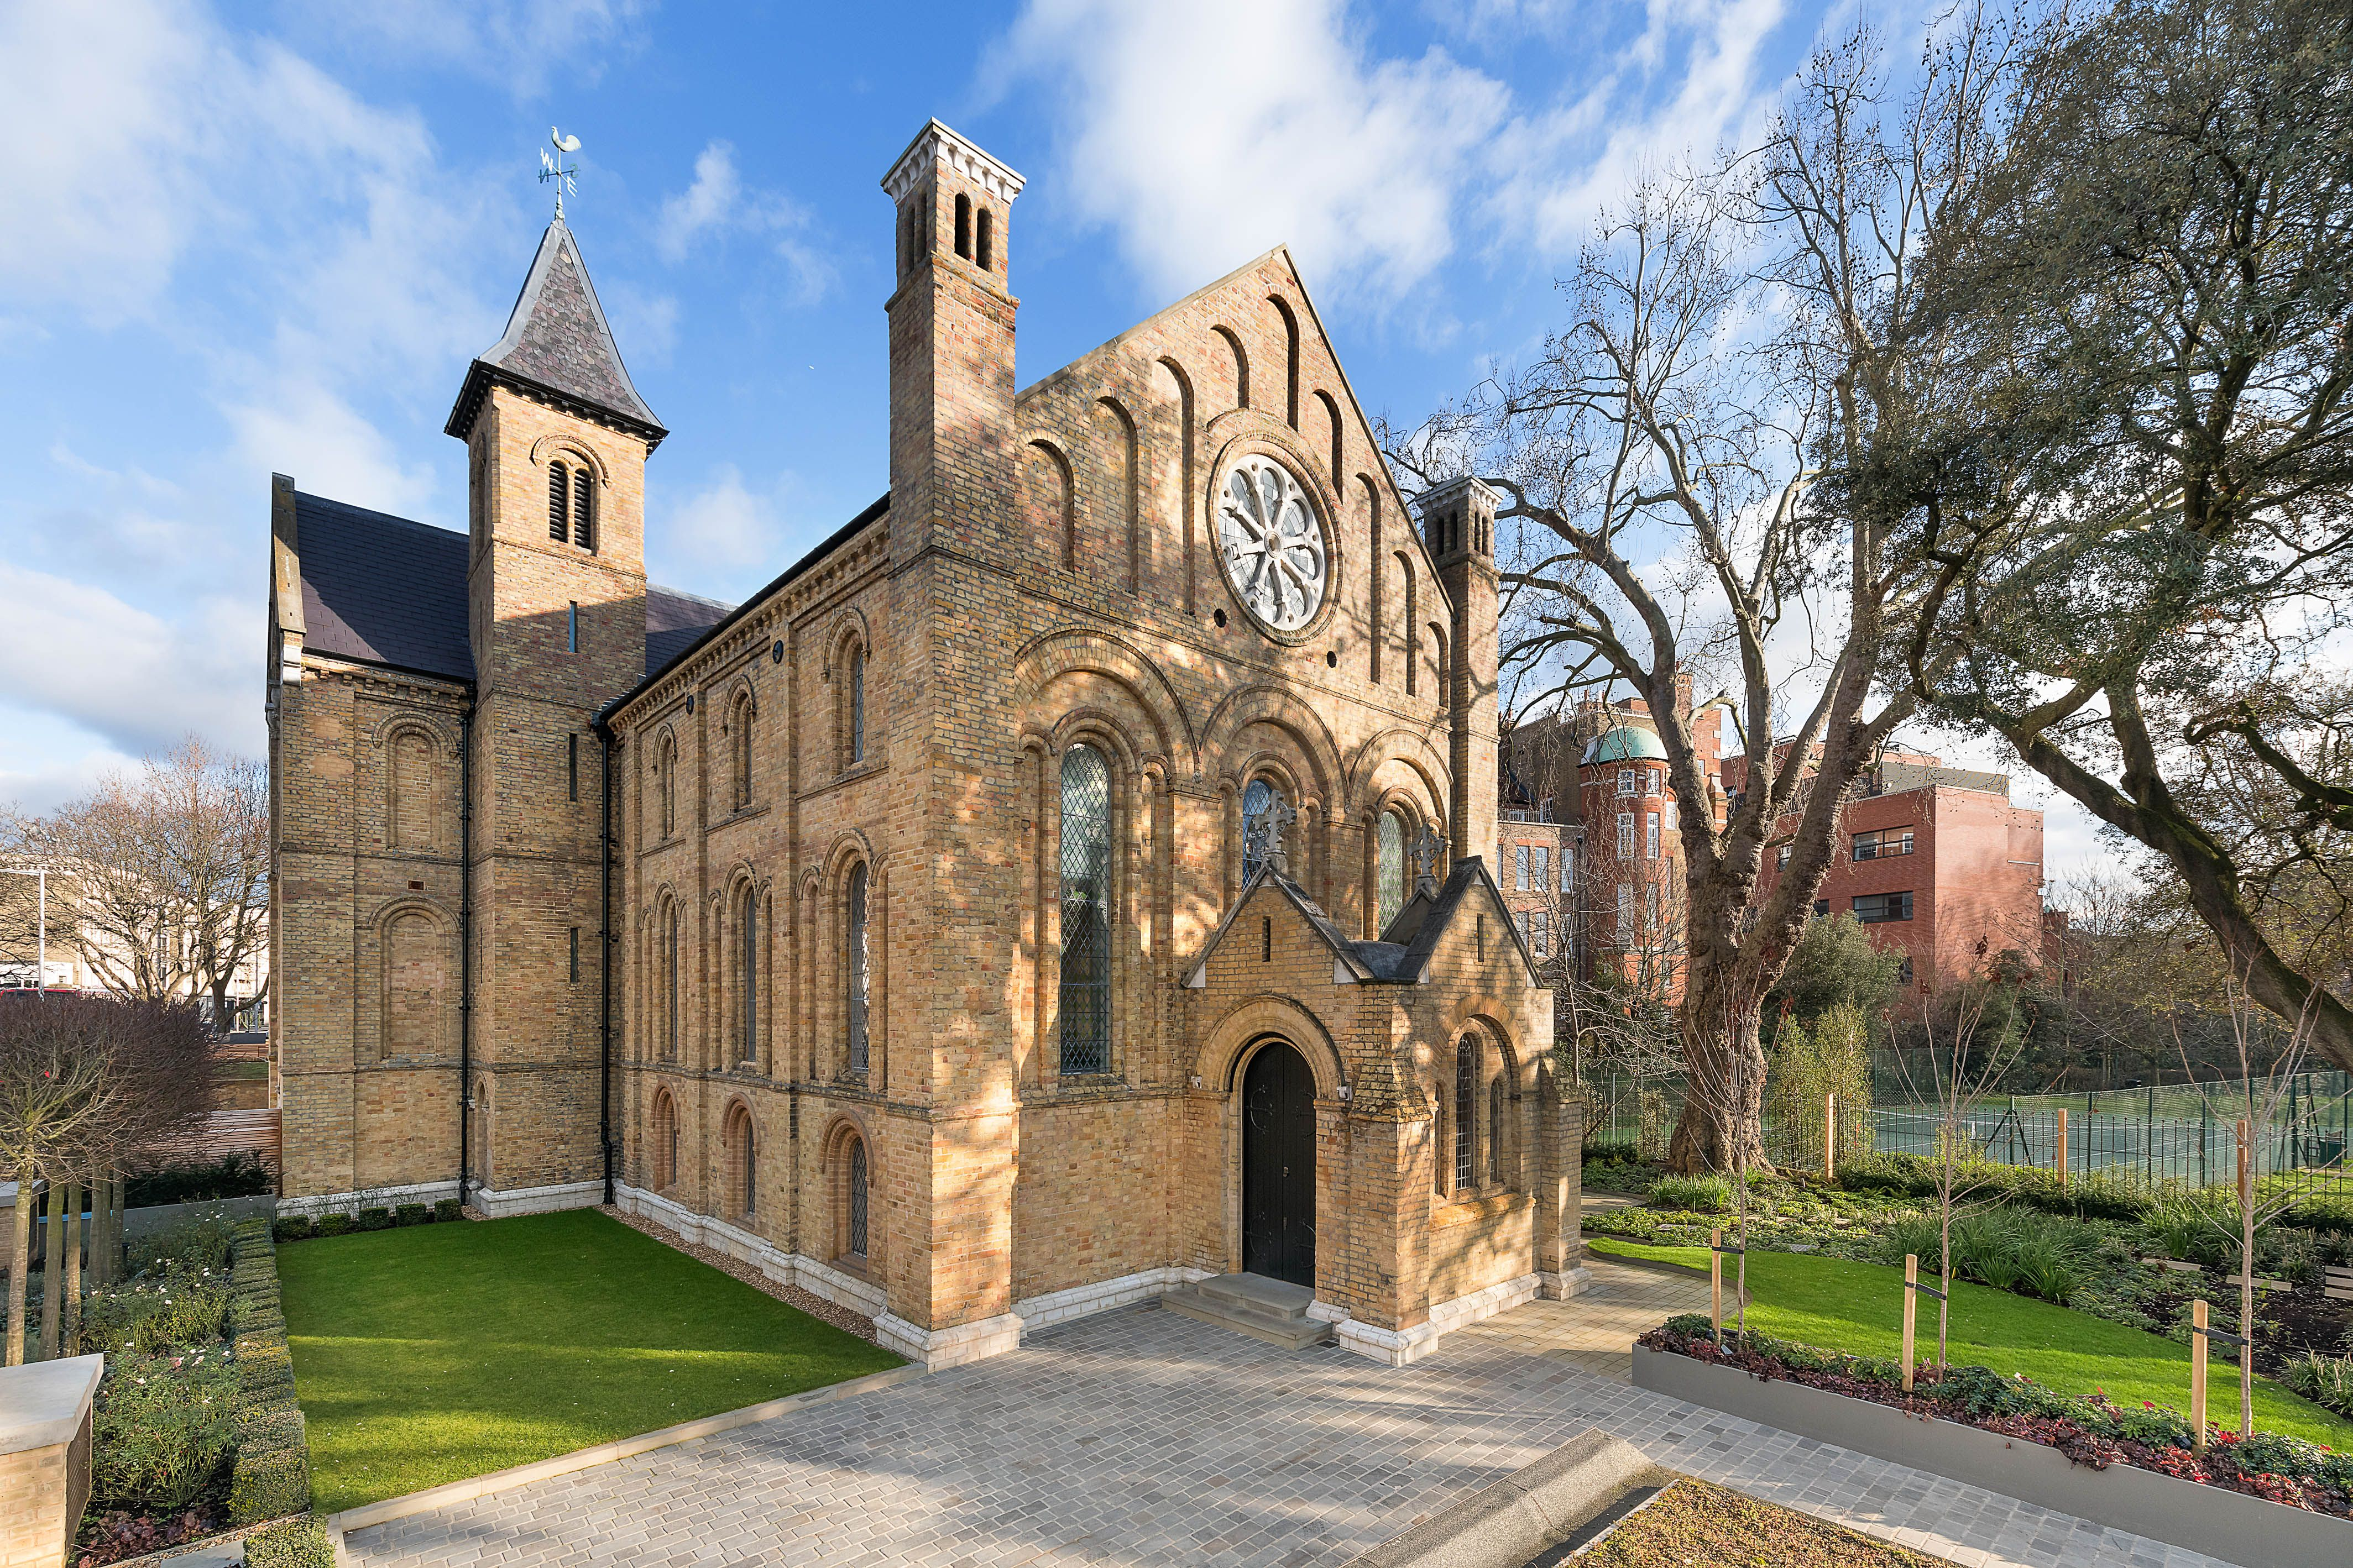 Incredible church conversion for sale in Fulham, London, for £15 million